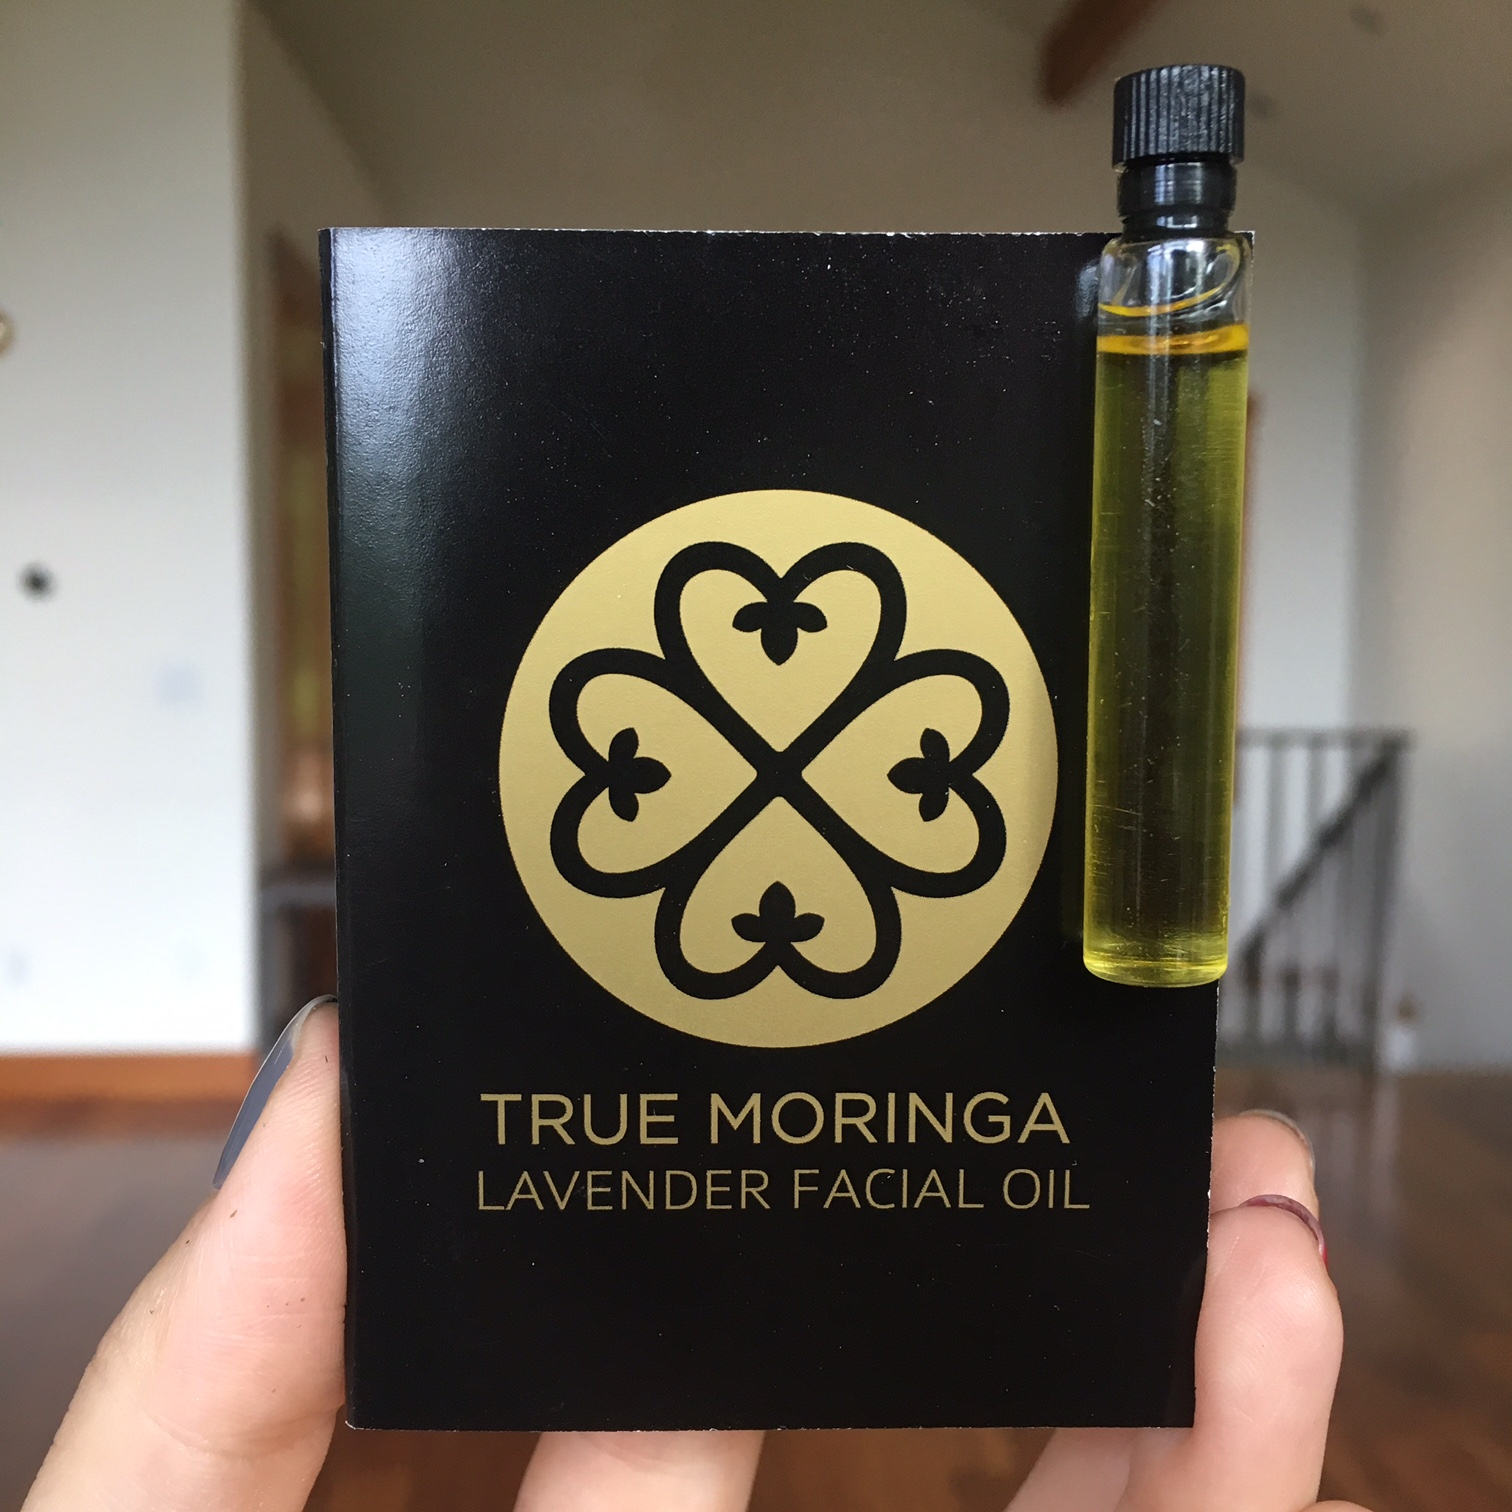 True Moringa Lavender Facial Oil